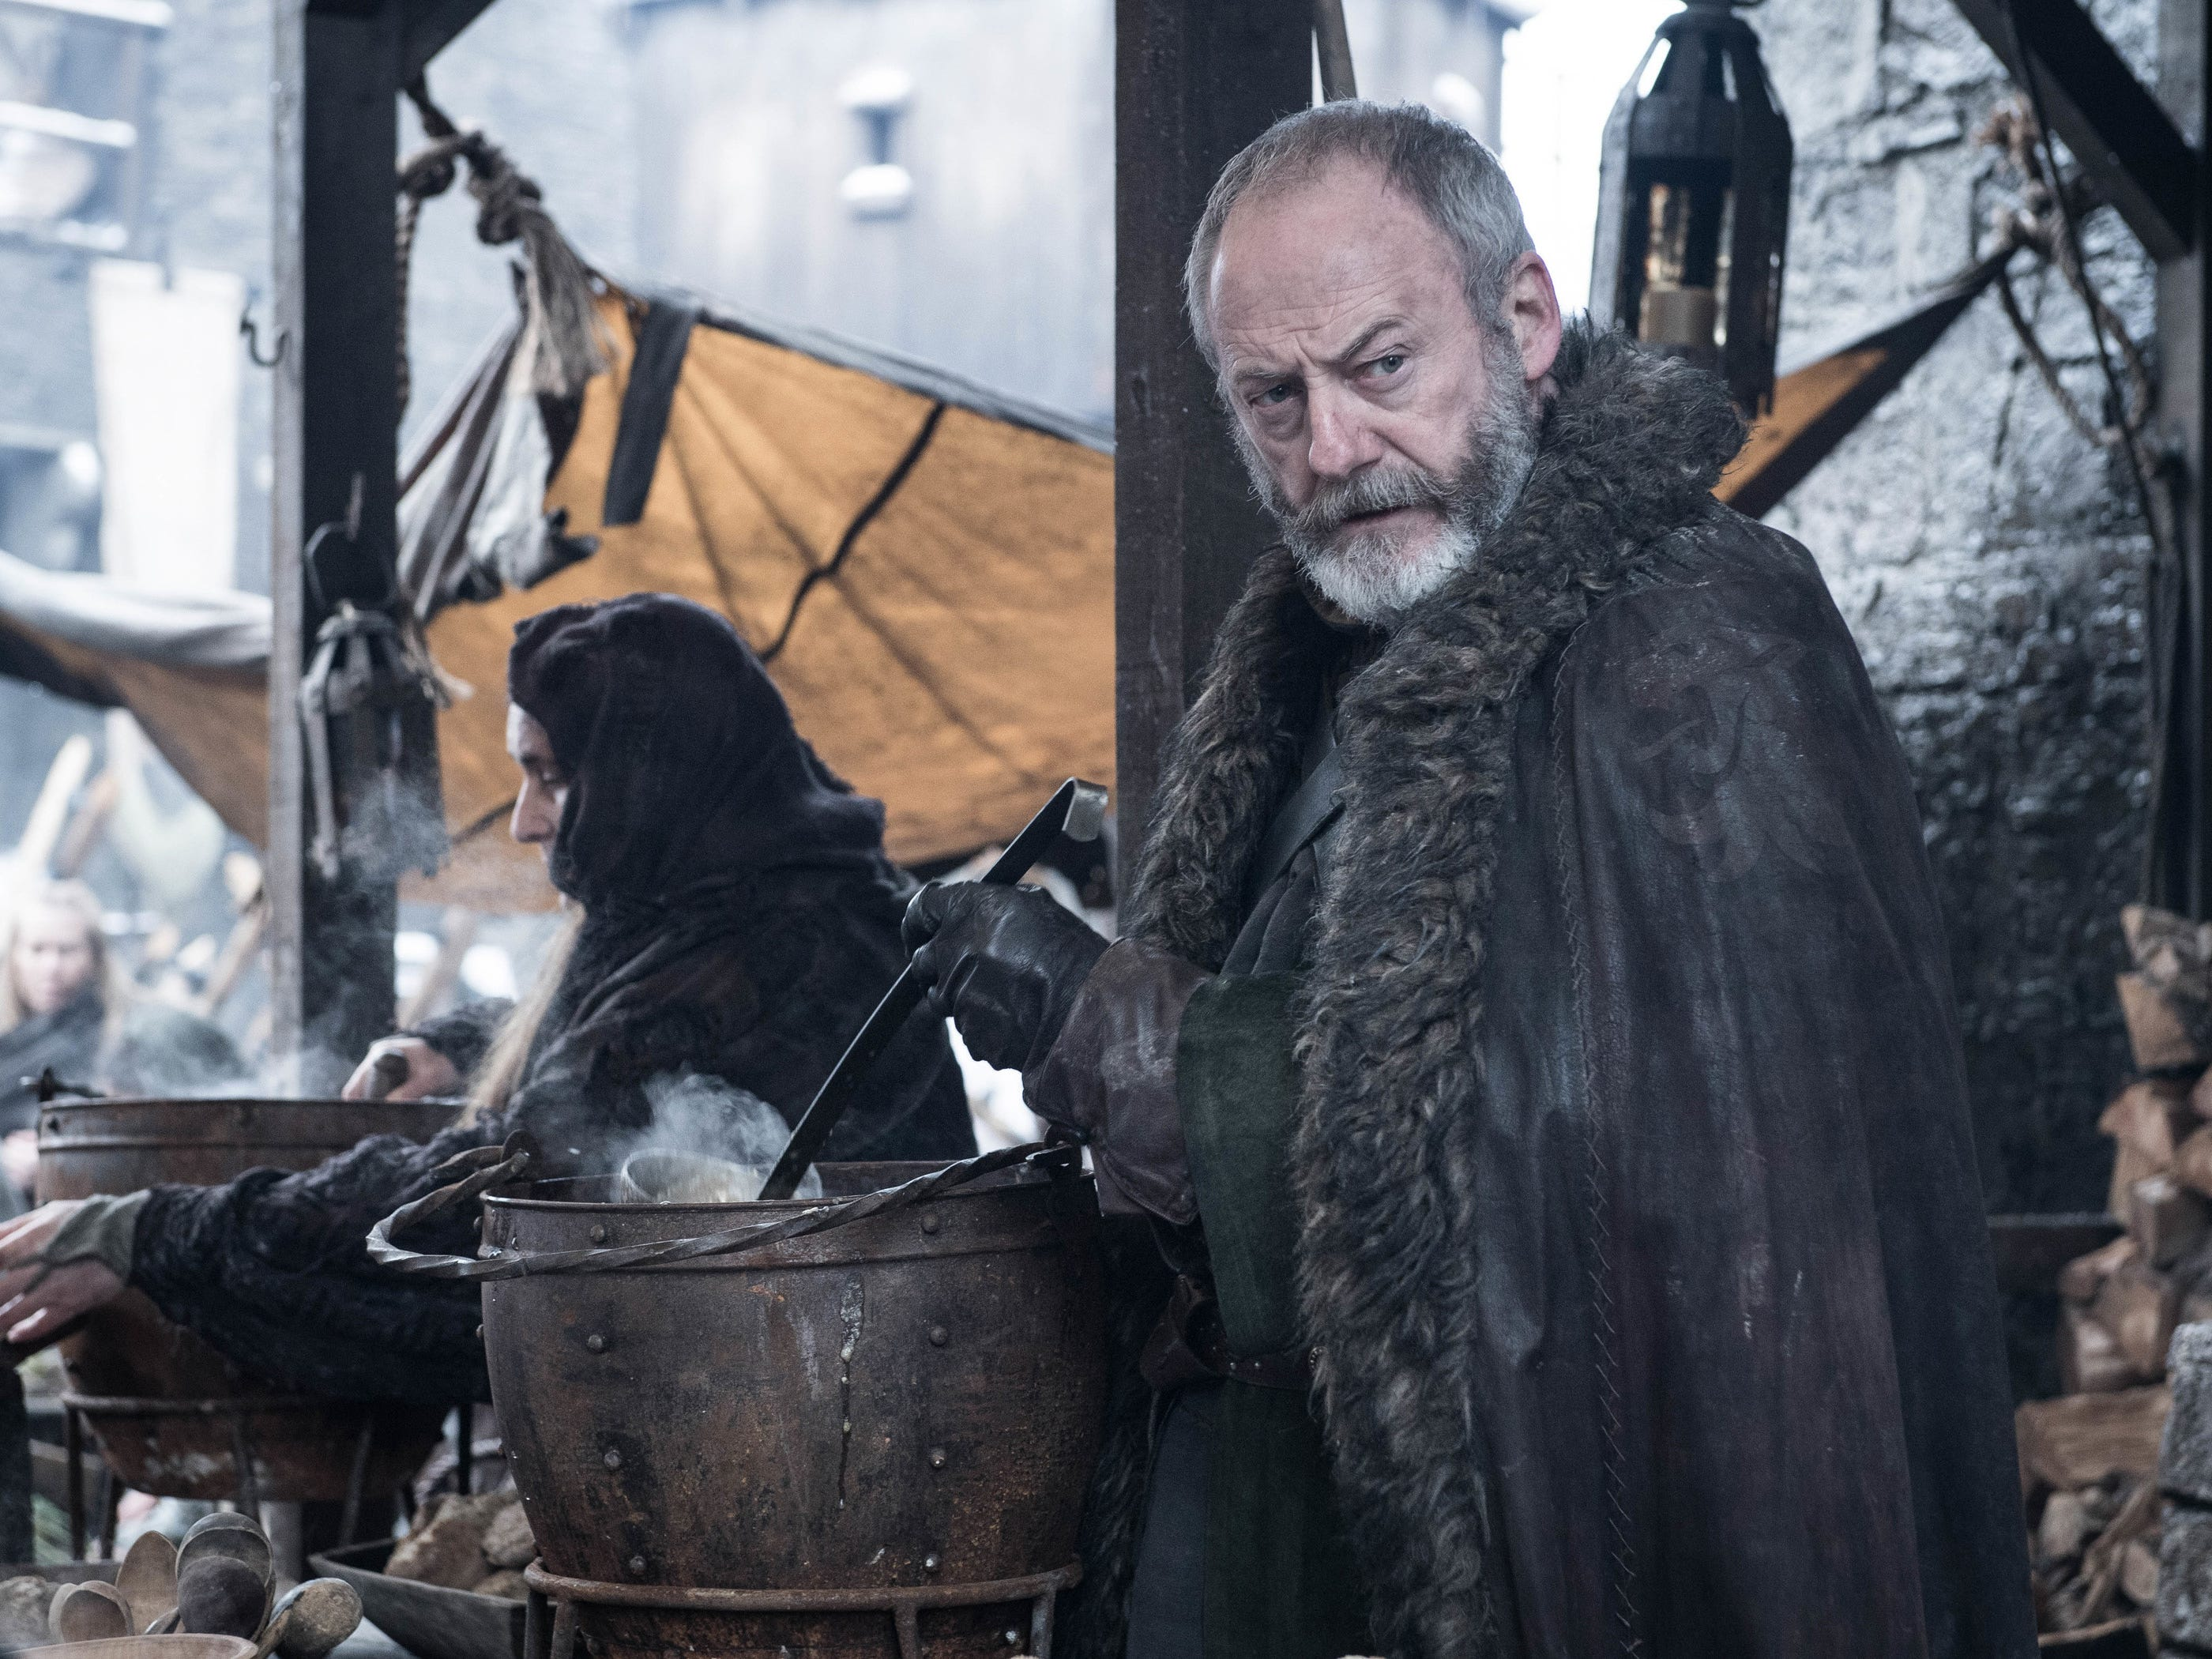 'Game of Thrones': Former CIA deputy director David Cohen cameos in Winterfell soup line